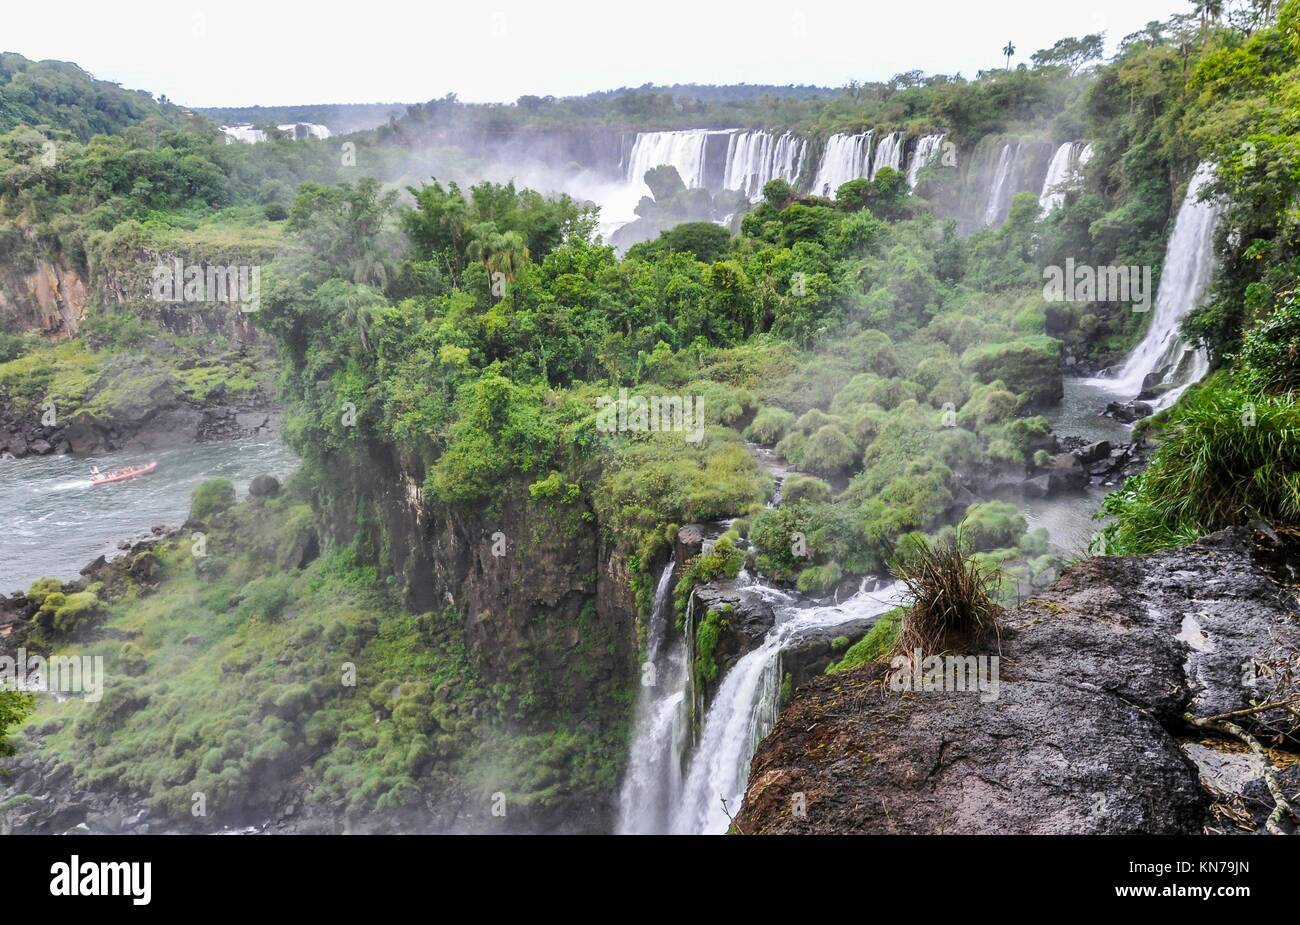 Upper circuit at Iguazu Falls, one of the New Seven Wonders of Nature, Argentina. - Stock Image